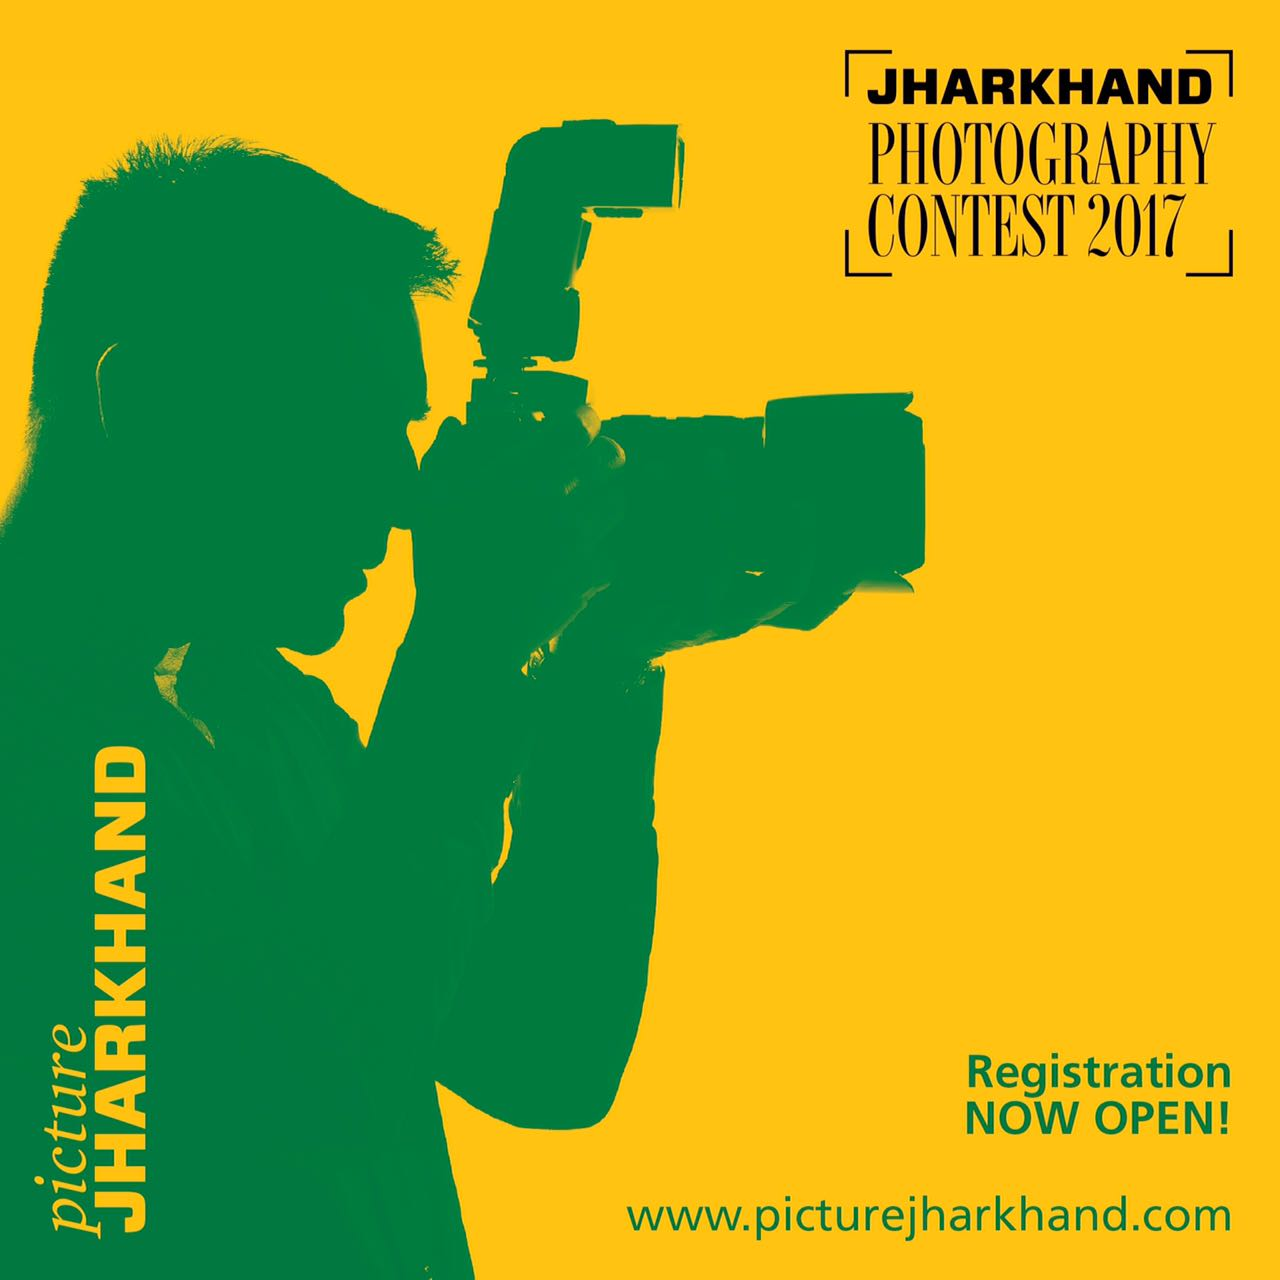 Picture Jharkhand contest